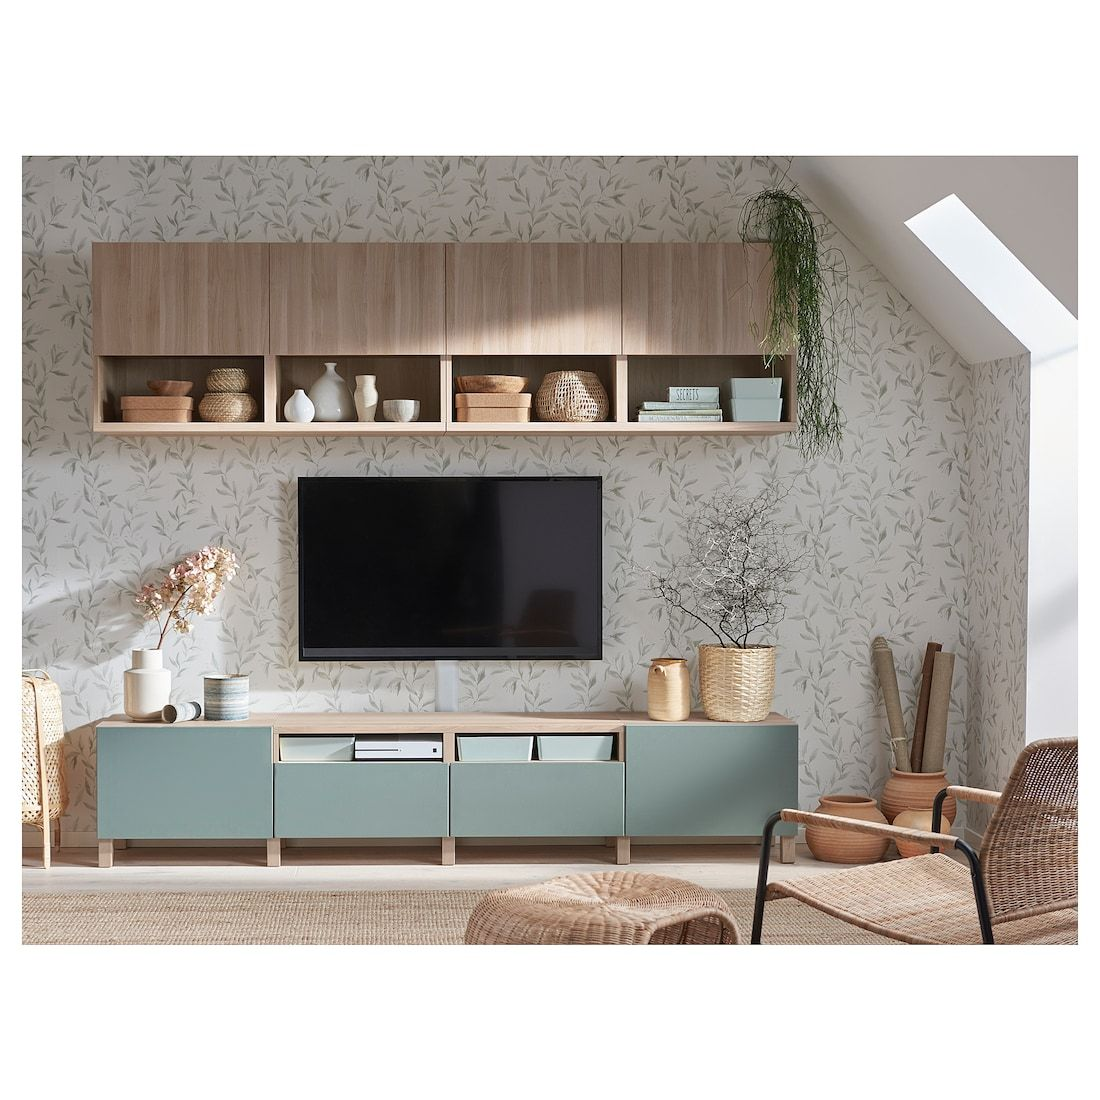 BestÅ Tv Storage Combination Walnut Effect Light Gray Lappviken Notviken Stubbarp Gray Green 94 1 2x16 1 2x90 1 2